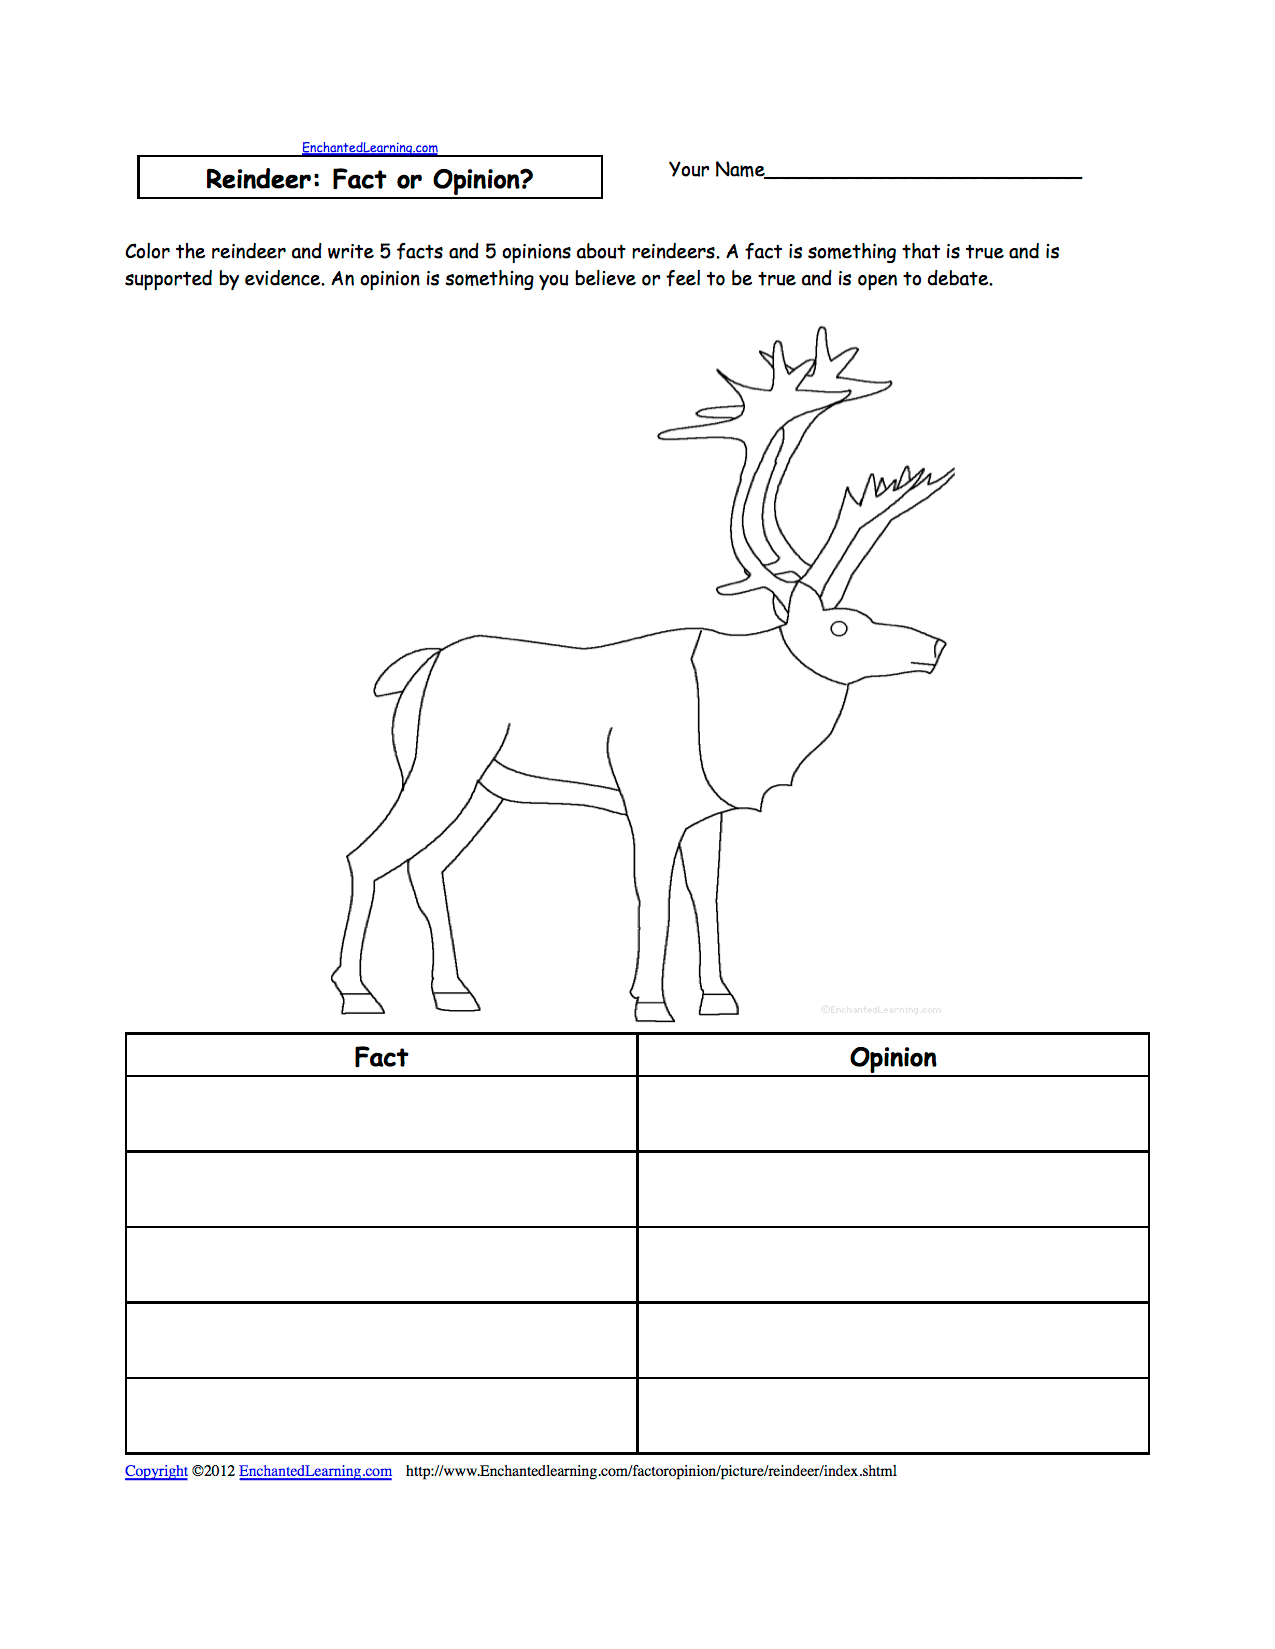 Reindeer At Enchantedlearning